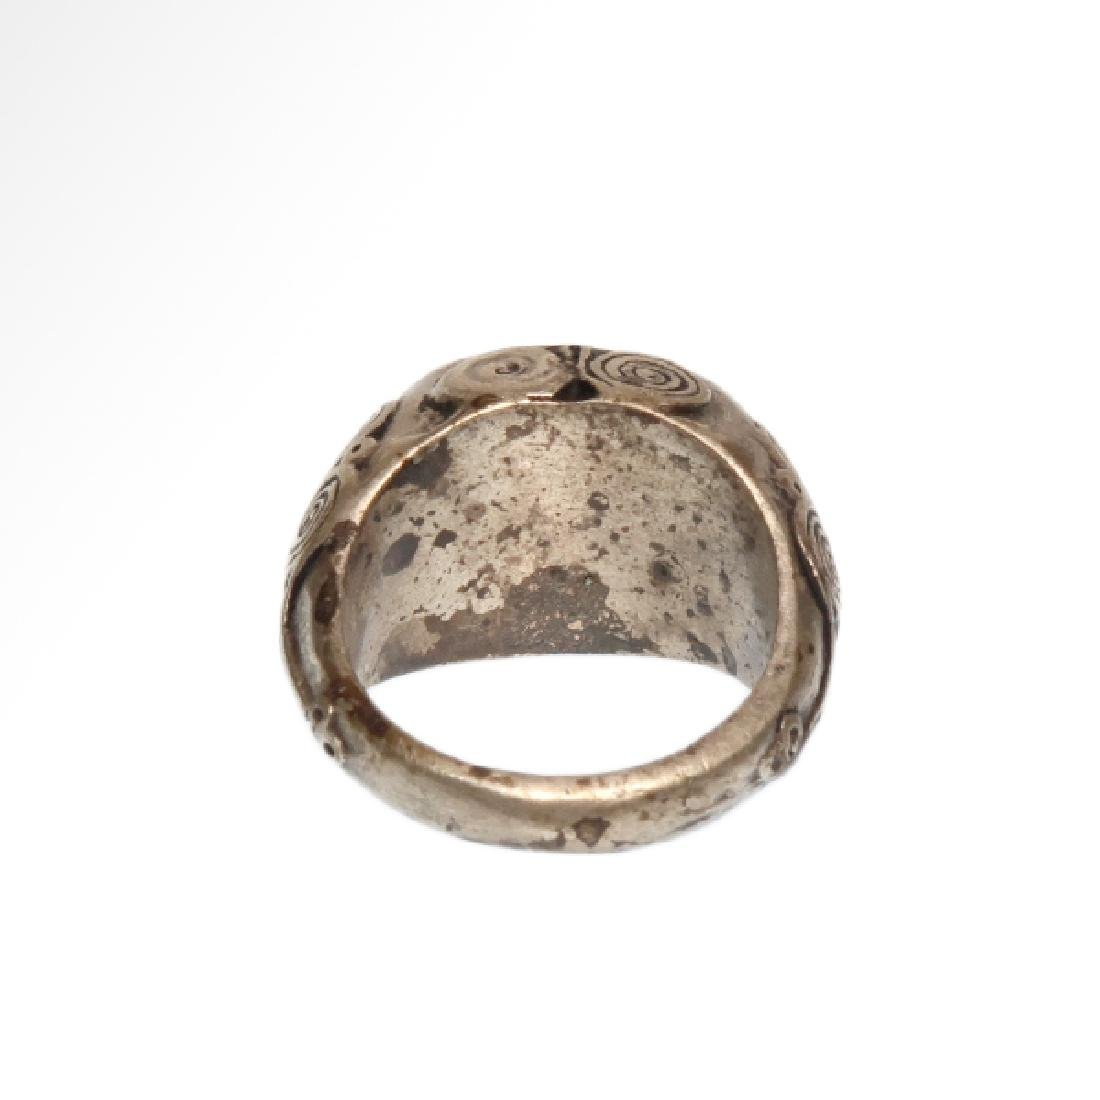 Viking Silver and Cornelian Ring, c. 10th Century A.D. - 5